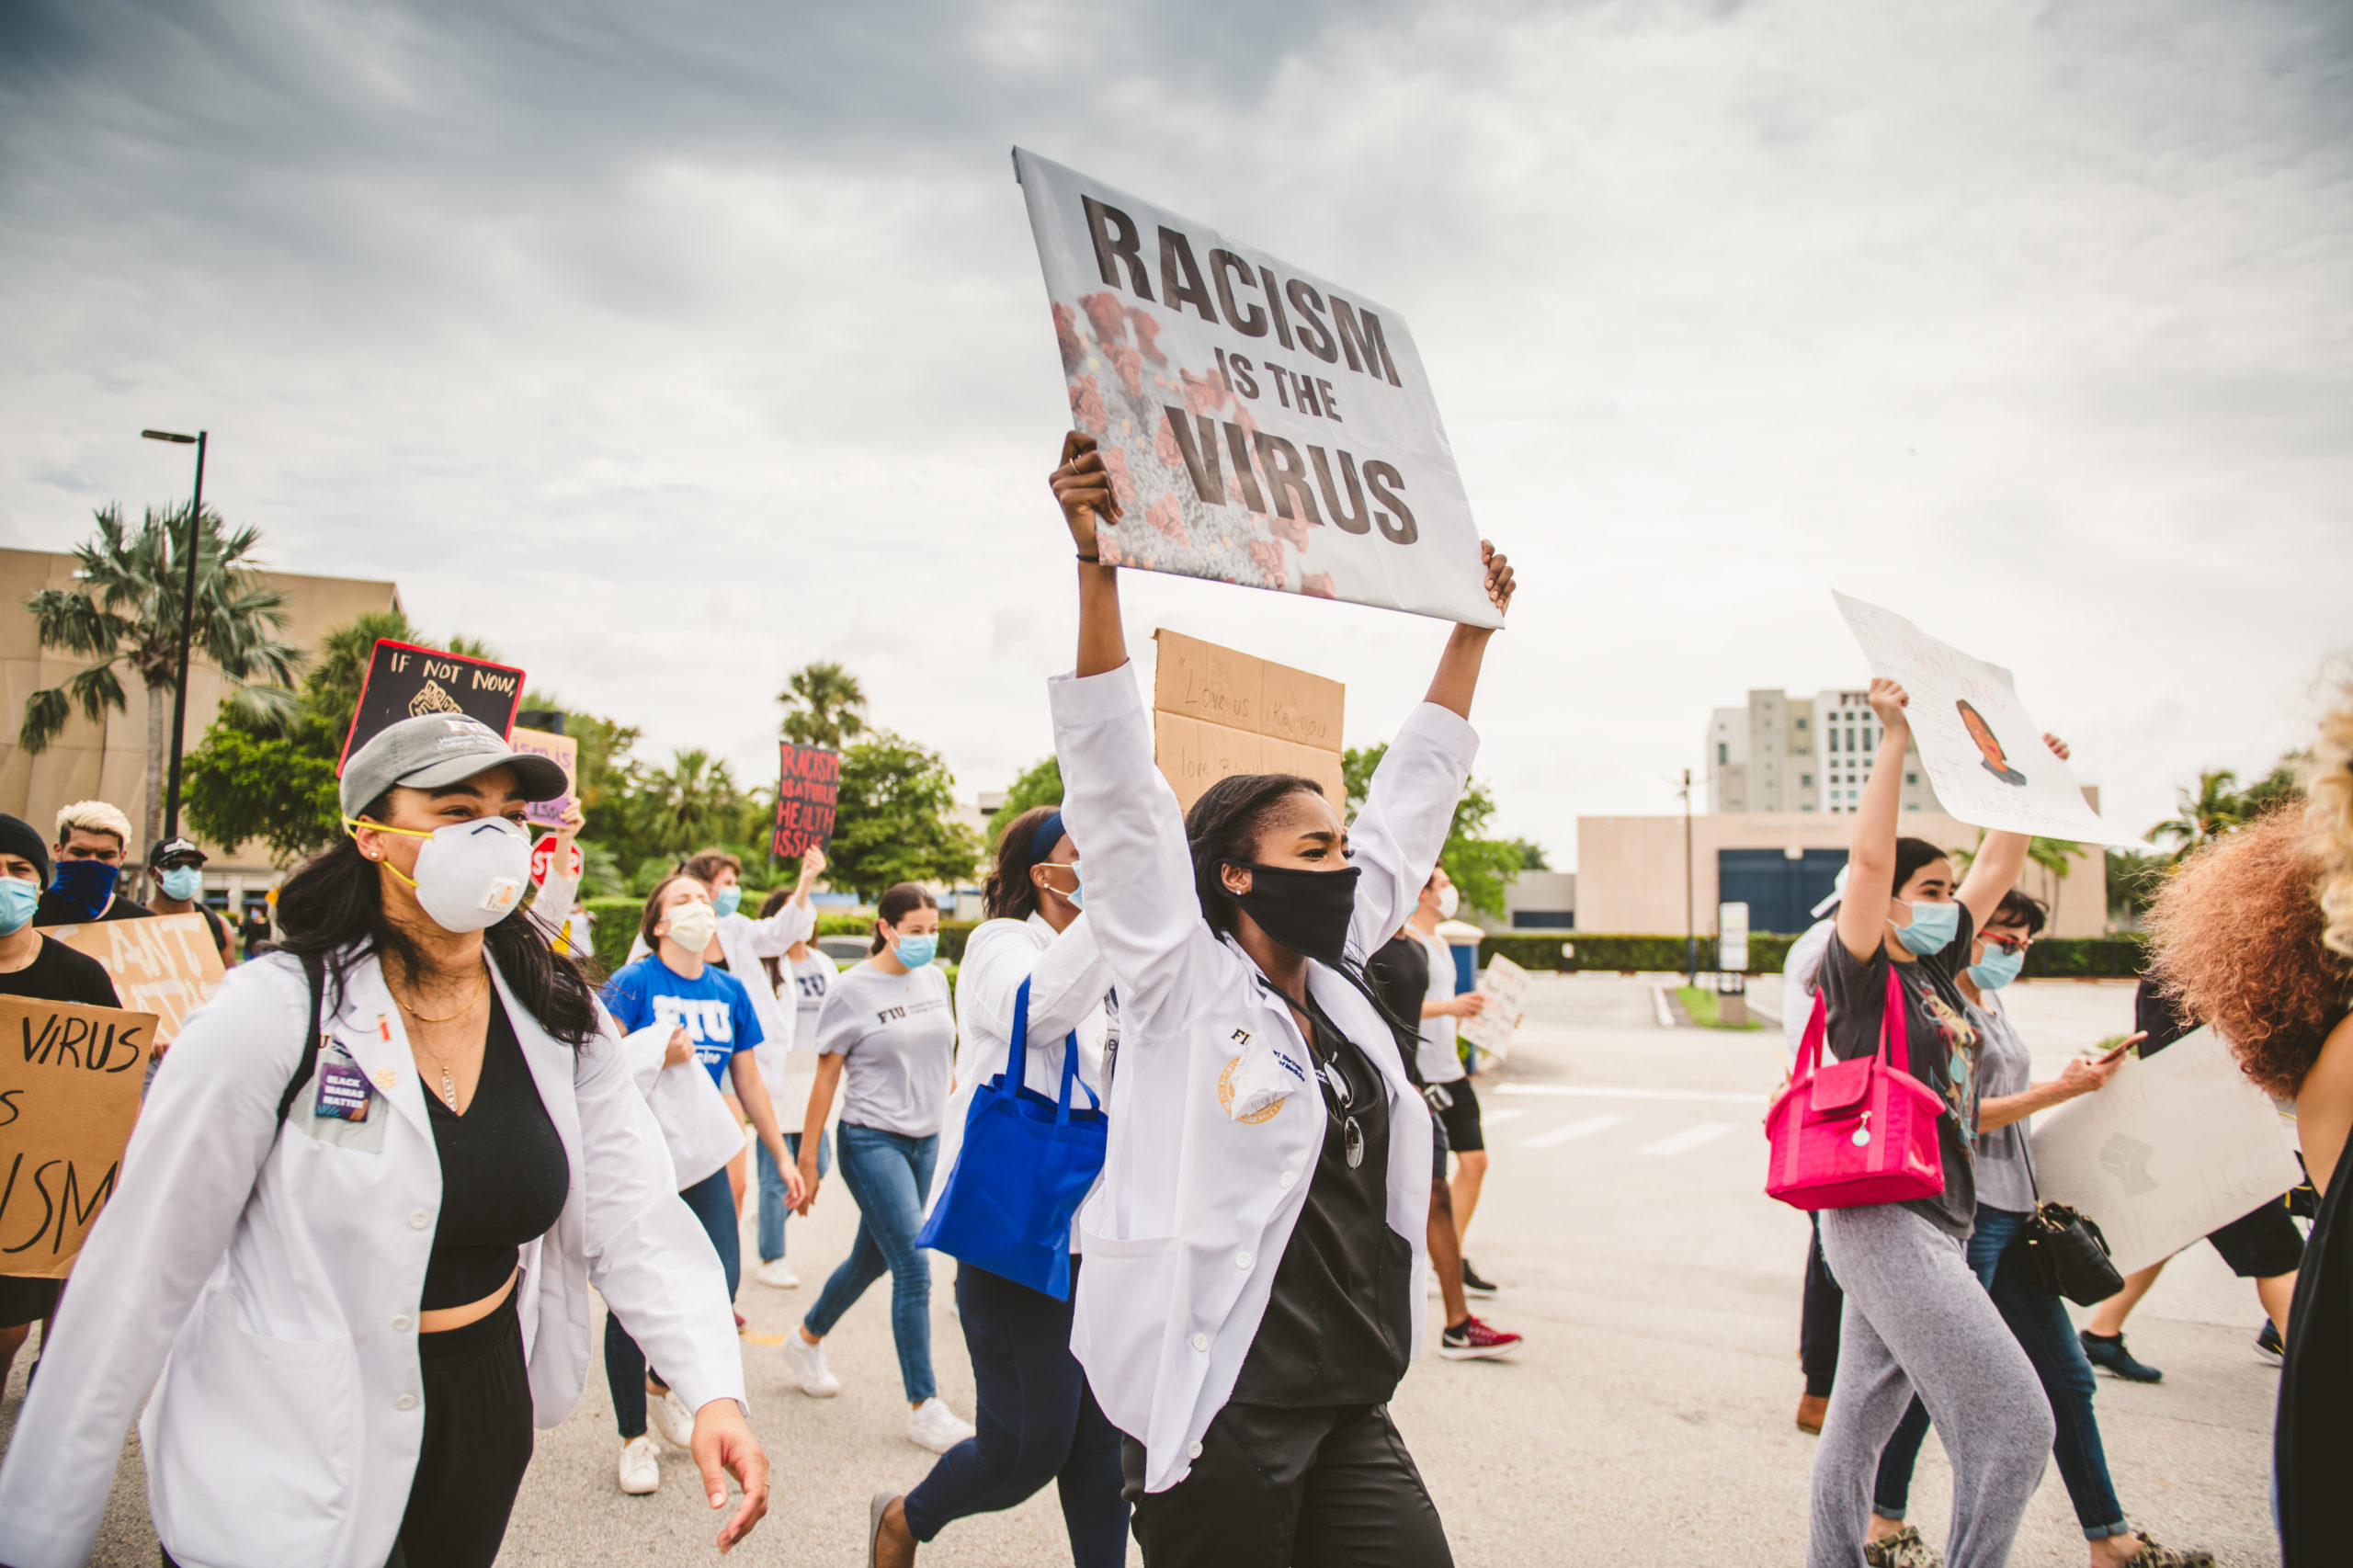 Photo of individuals holding a sign that says Racism is the Virus at a march